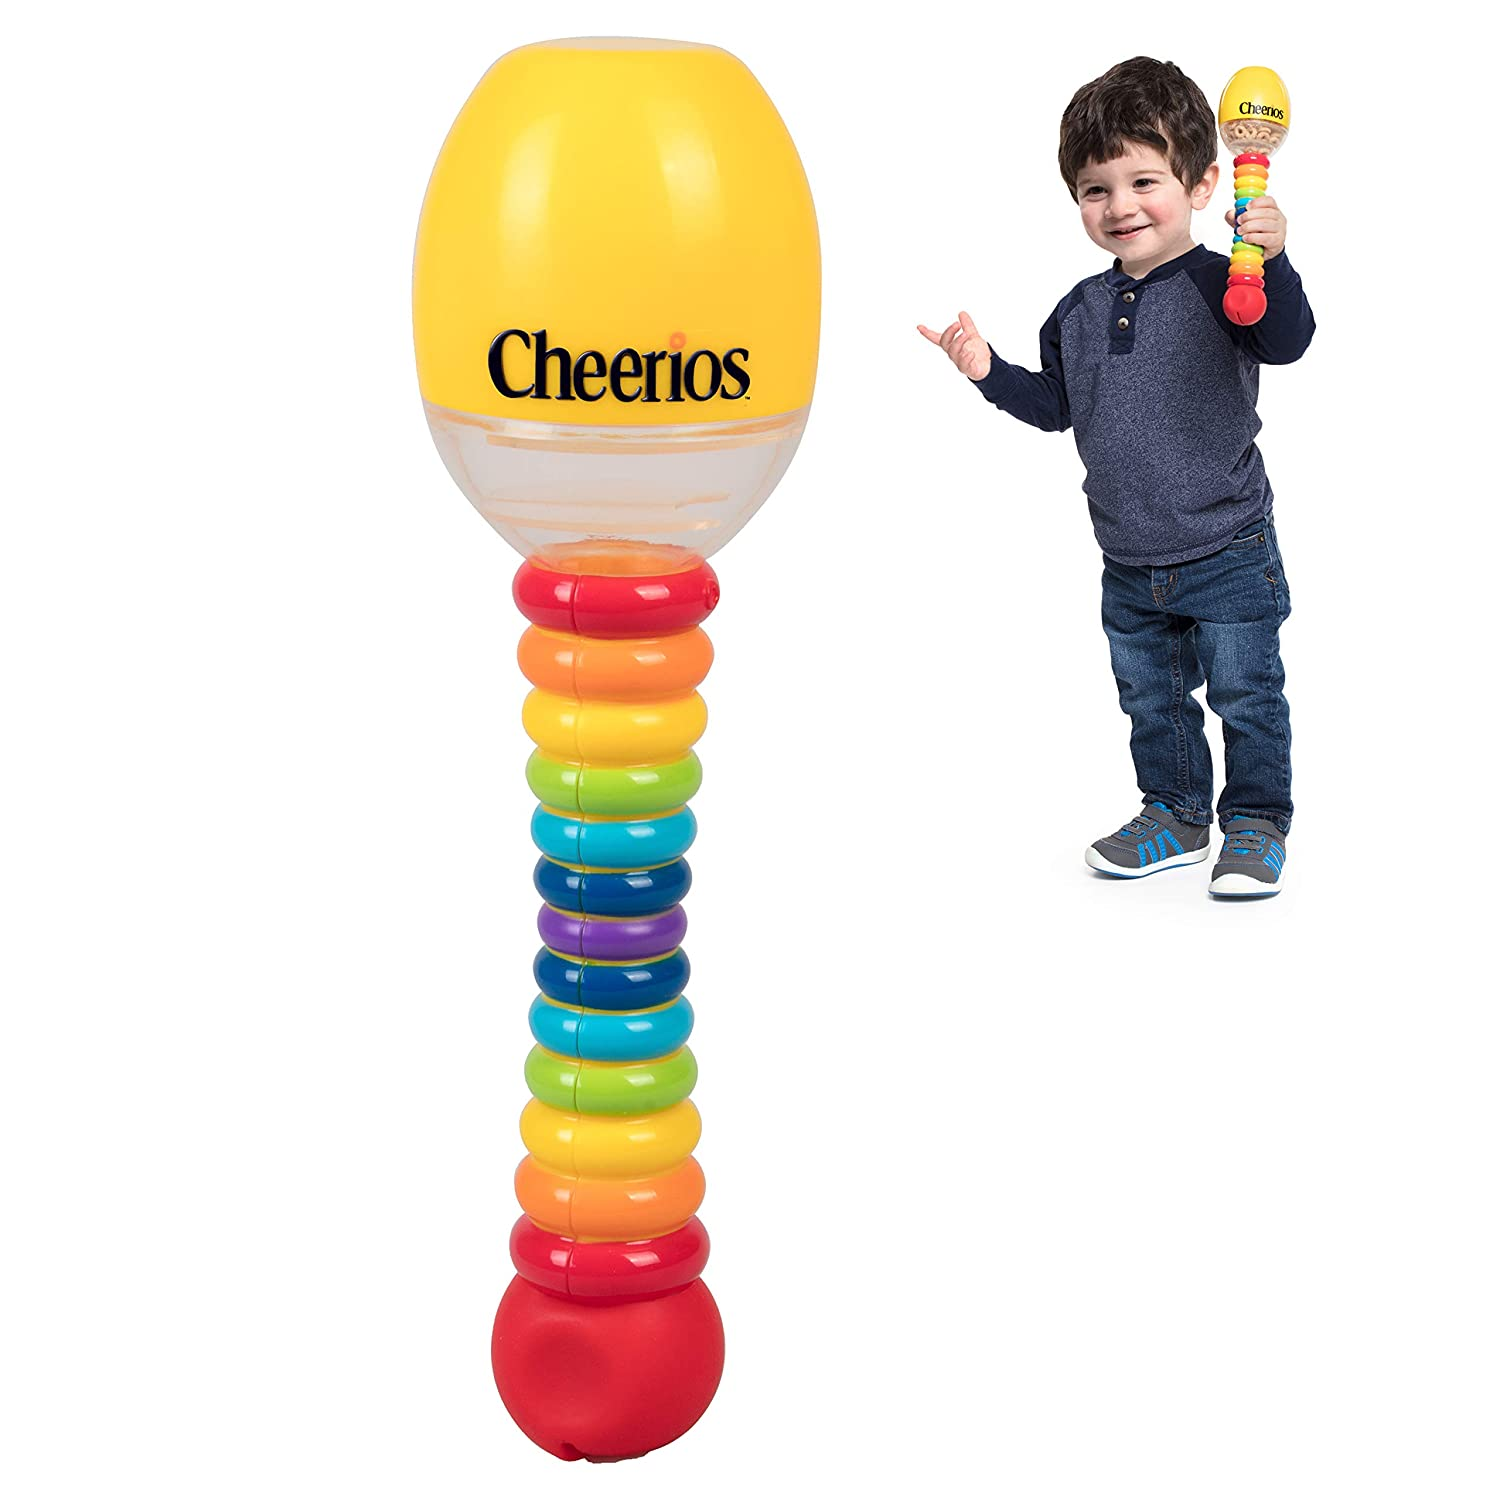 Cheerios Maraca Shake 'N Snack Baby Snack Food Container- Toddler Spill Proof Feeding Dispenser- Make Music Shaking and Snacking - BPA Free, PVC Free, Dishwasher Safe